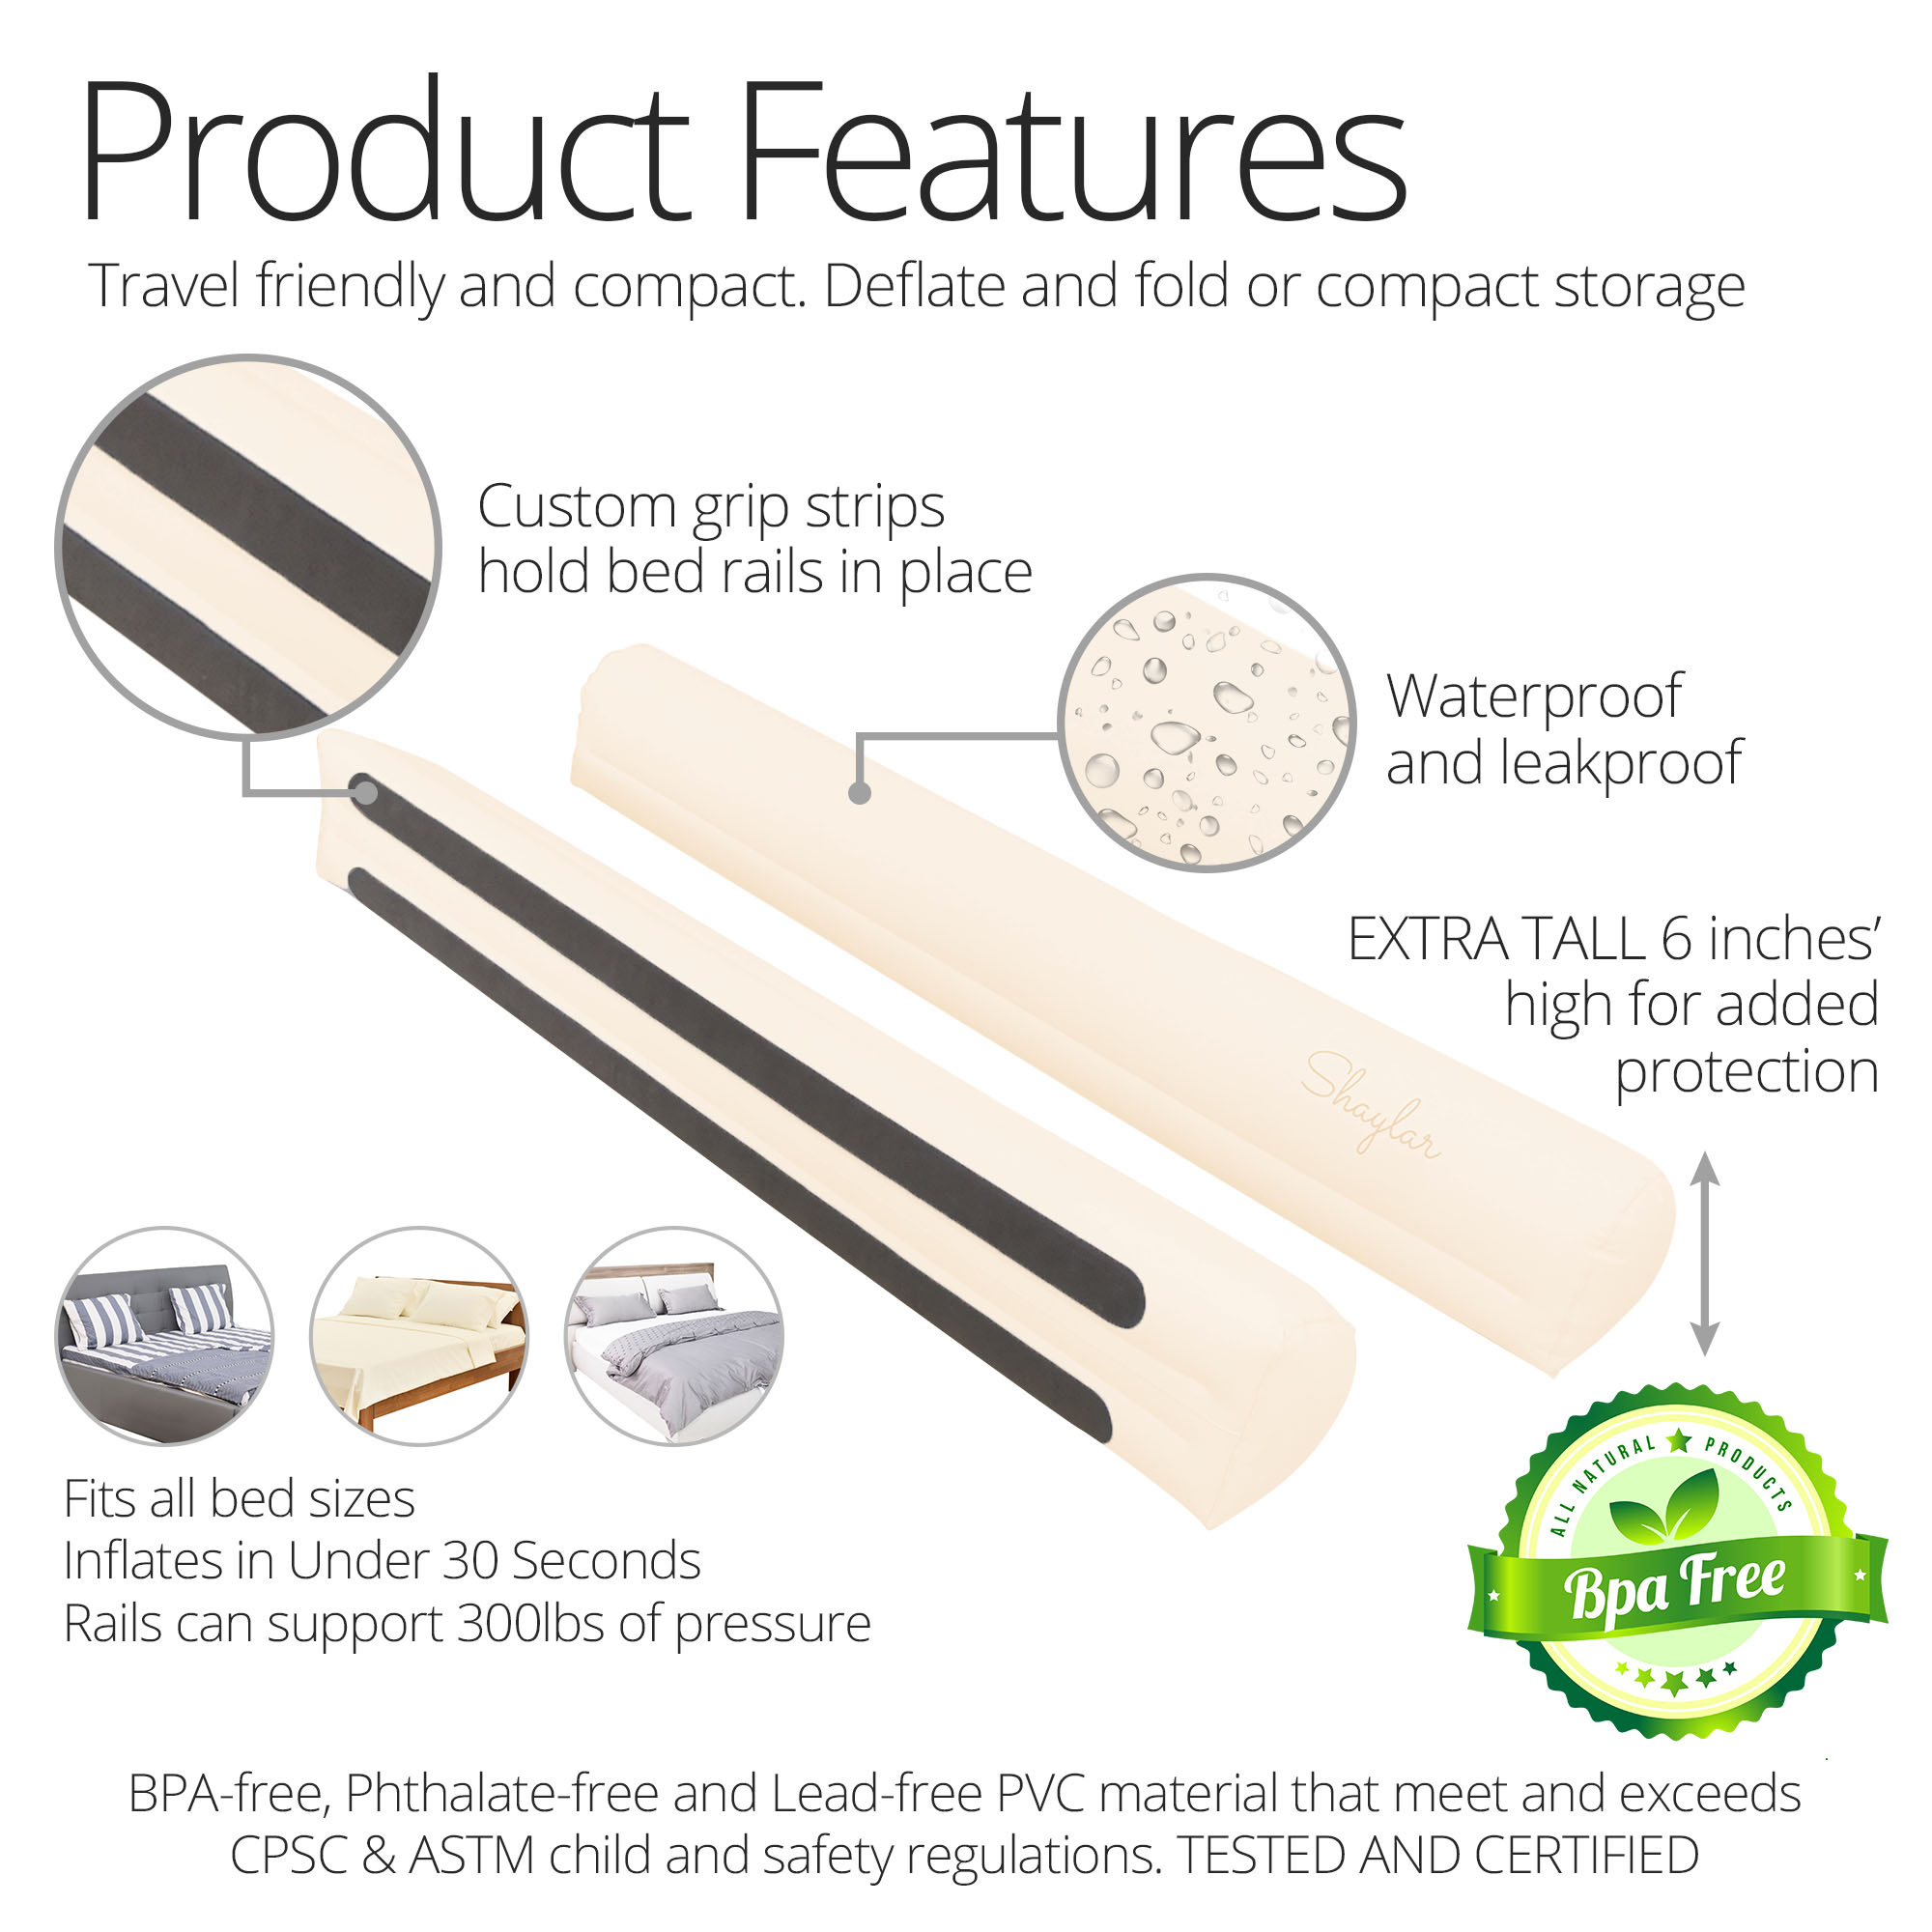 Inflatable Bed Rail – image03 – 2